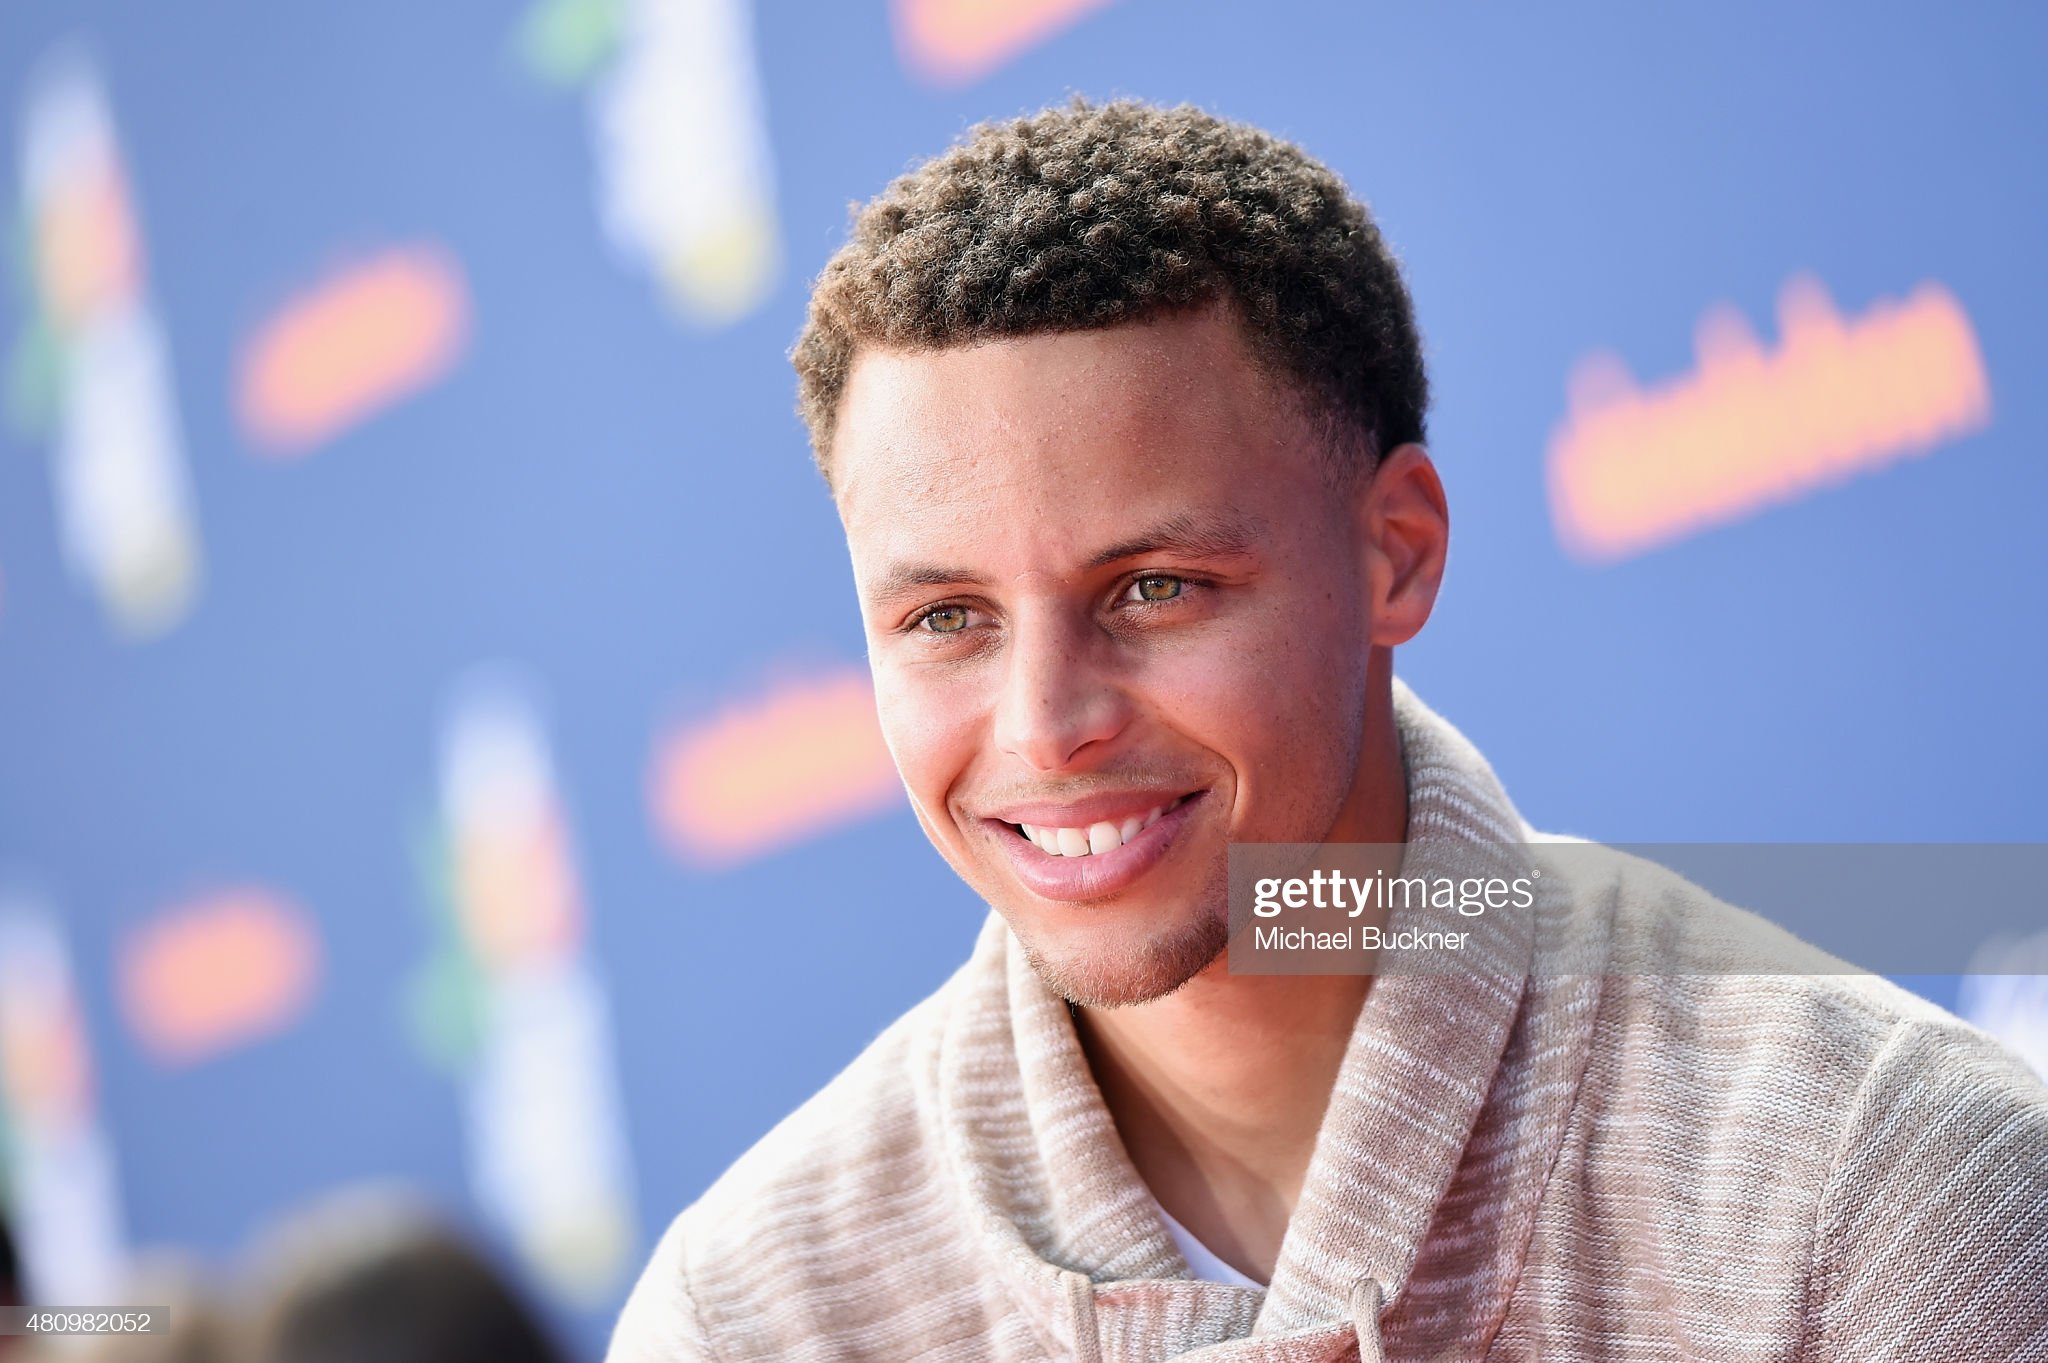 Stephen Curry Player-stephen-curry-attends-the-nickelodeon-kids-choice-sports-2015-picture-id480982052?s=2048x2048